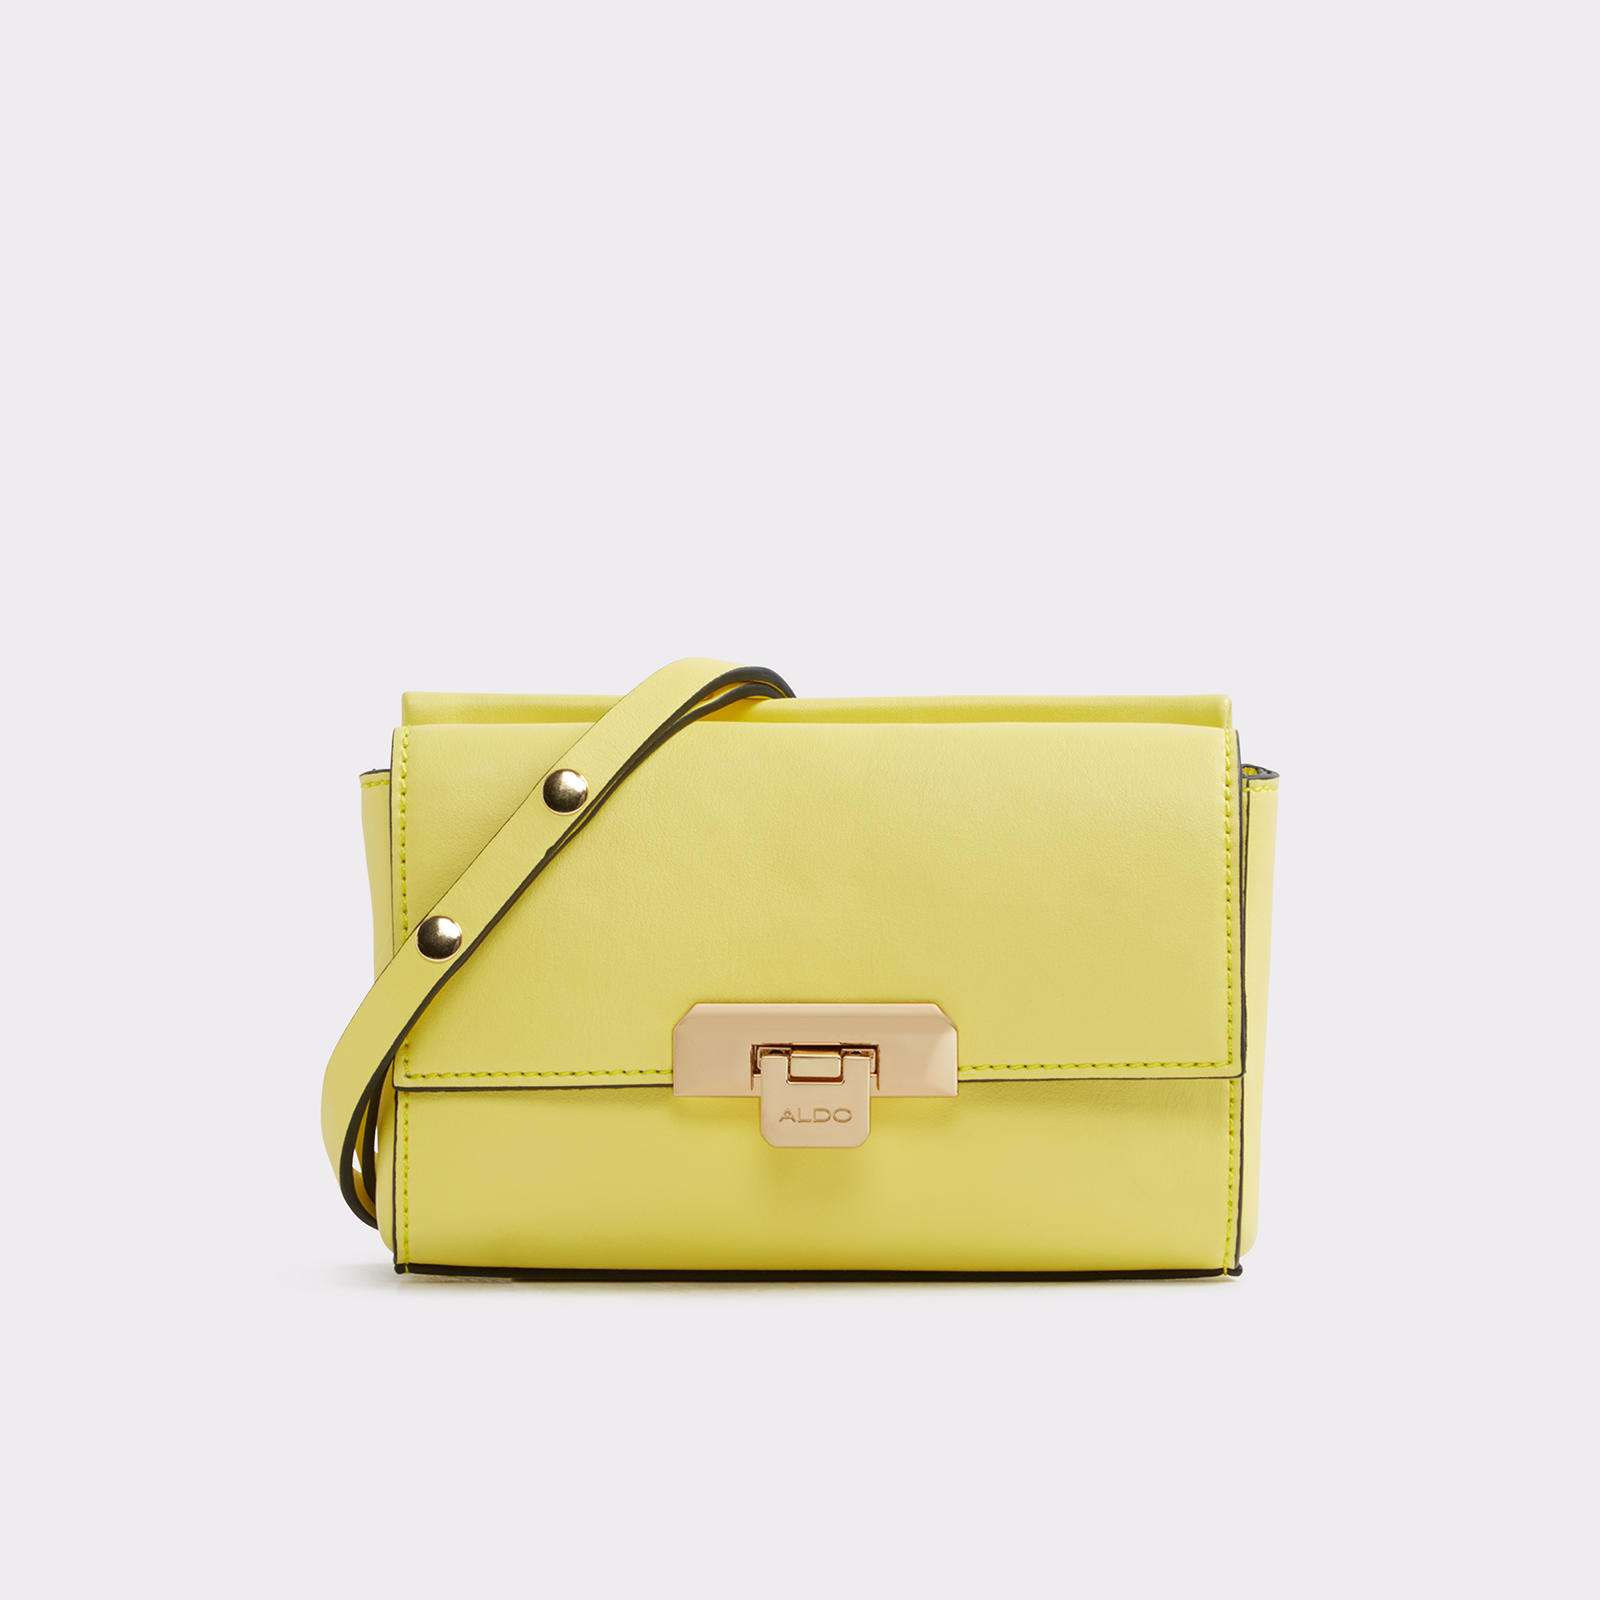 Aldo Livelong Yellow Women's Handbag | Hermosaz